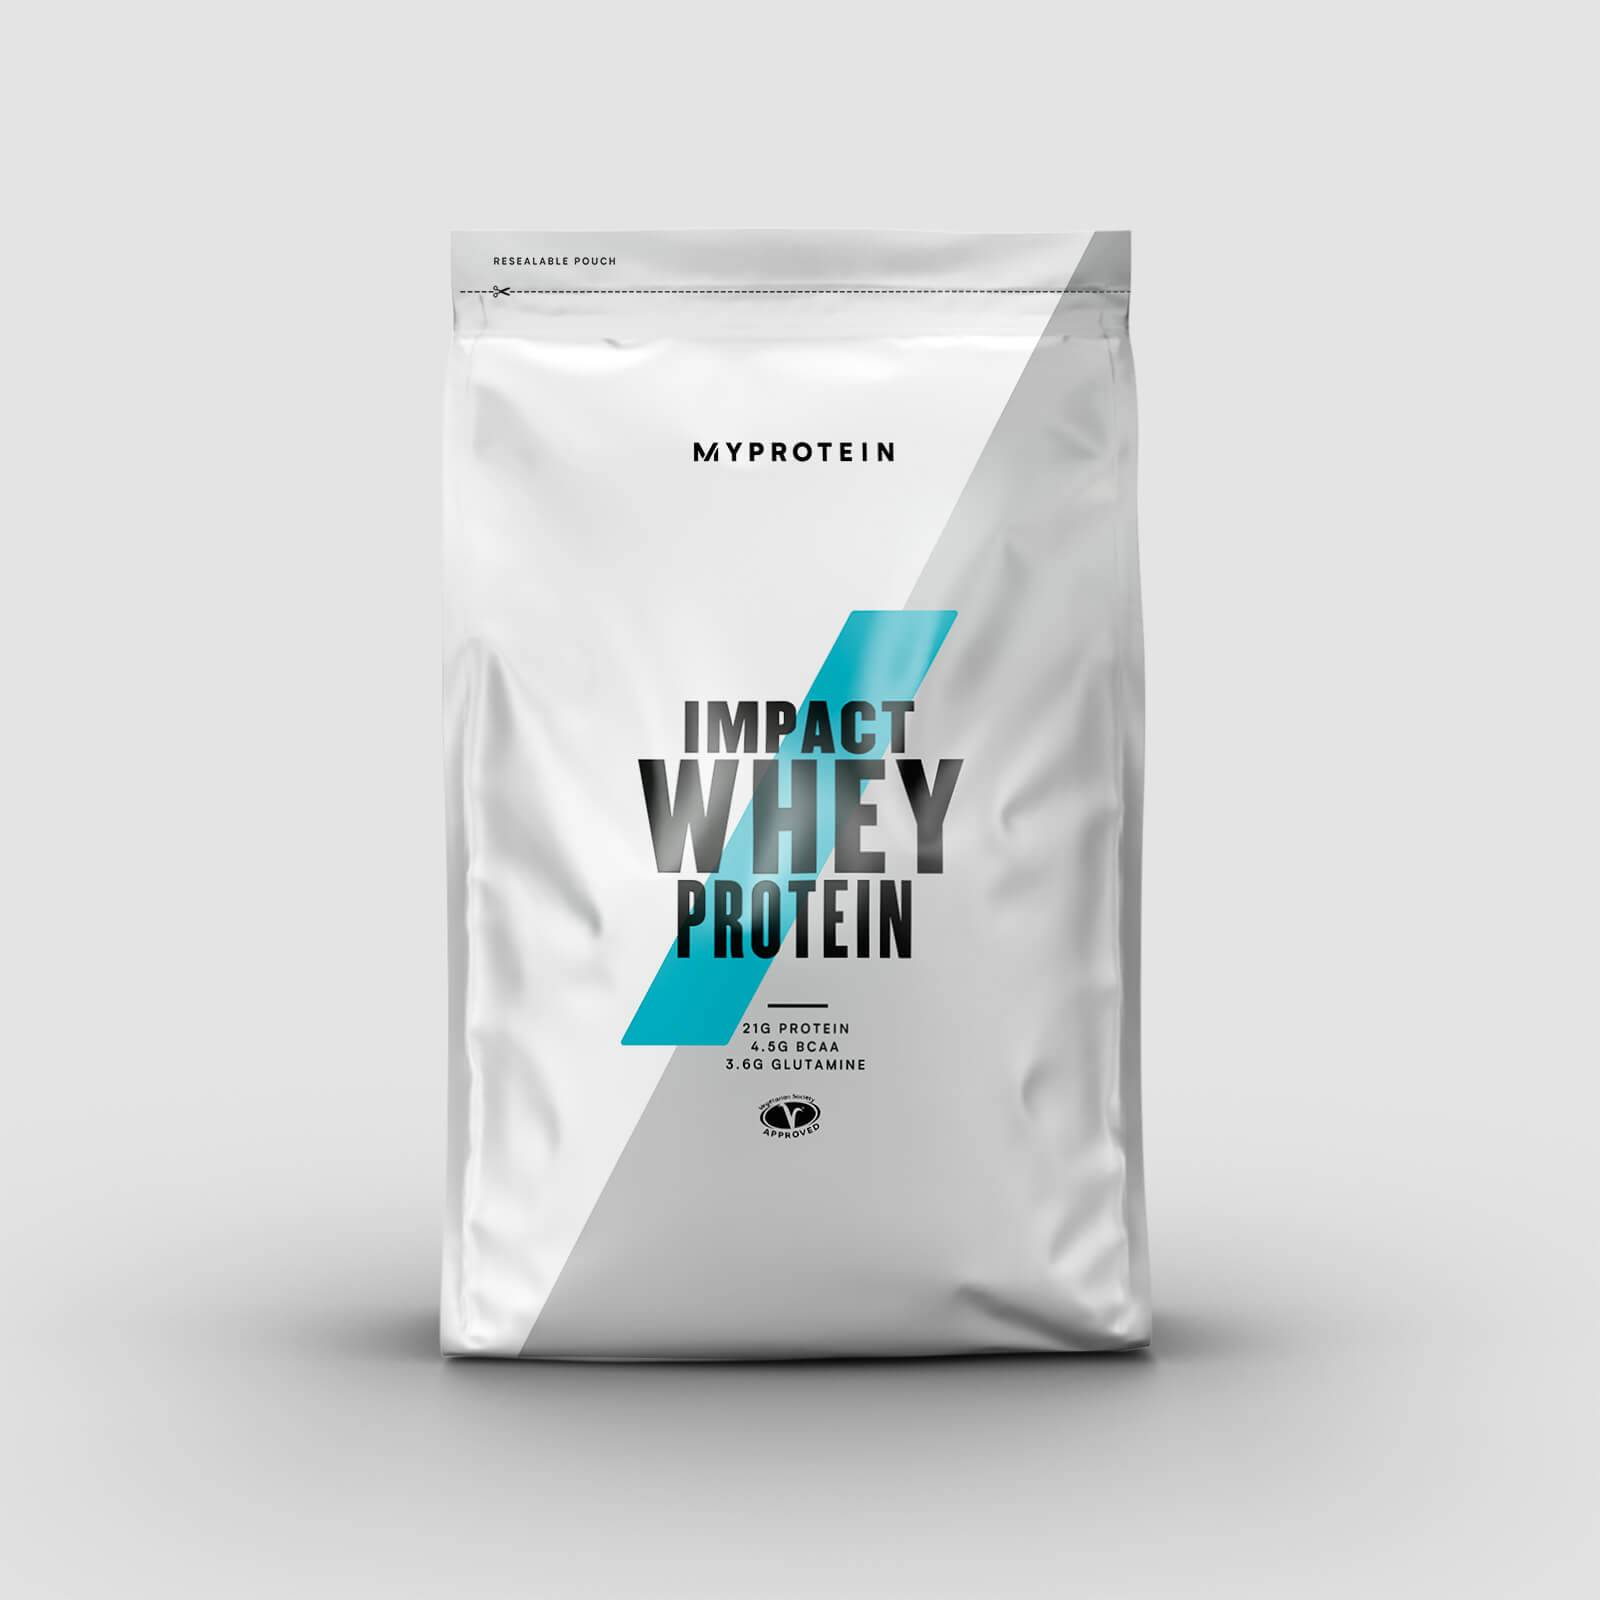 Myprotein Impact Whey Protein - 1kg - Chocolate Coconut - New and Improved